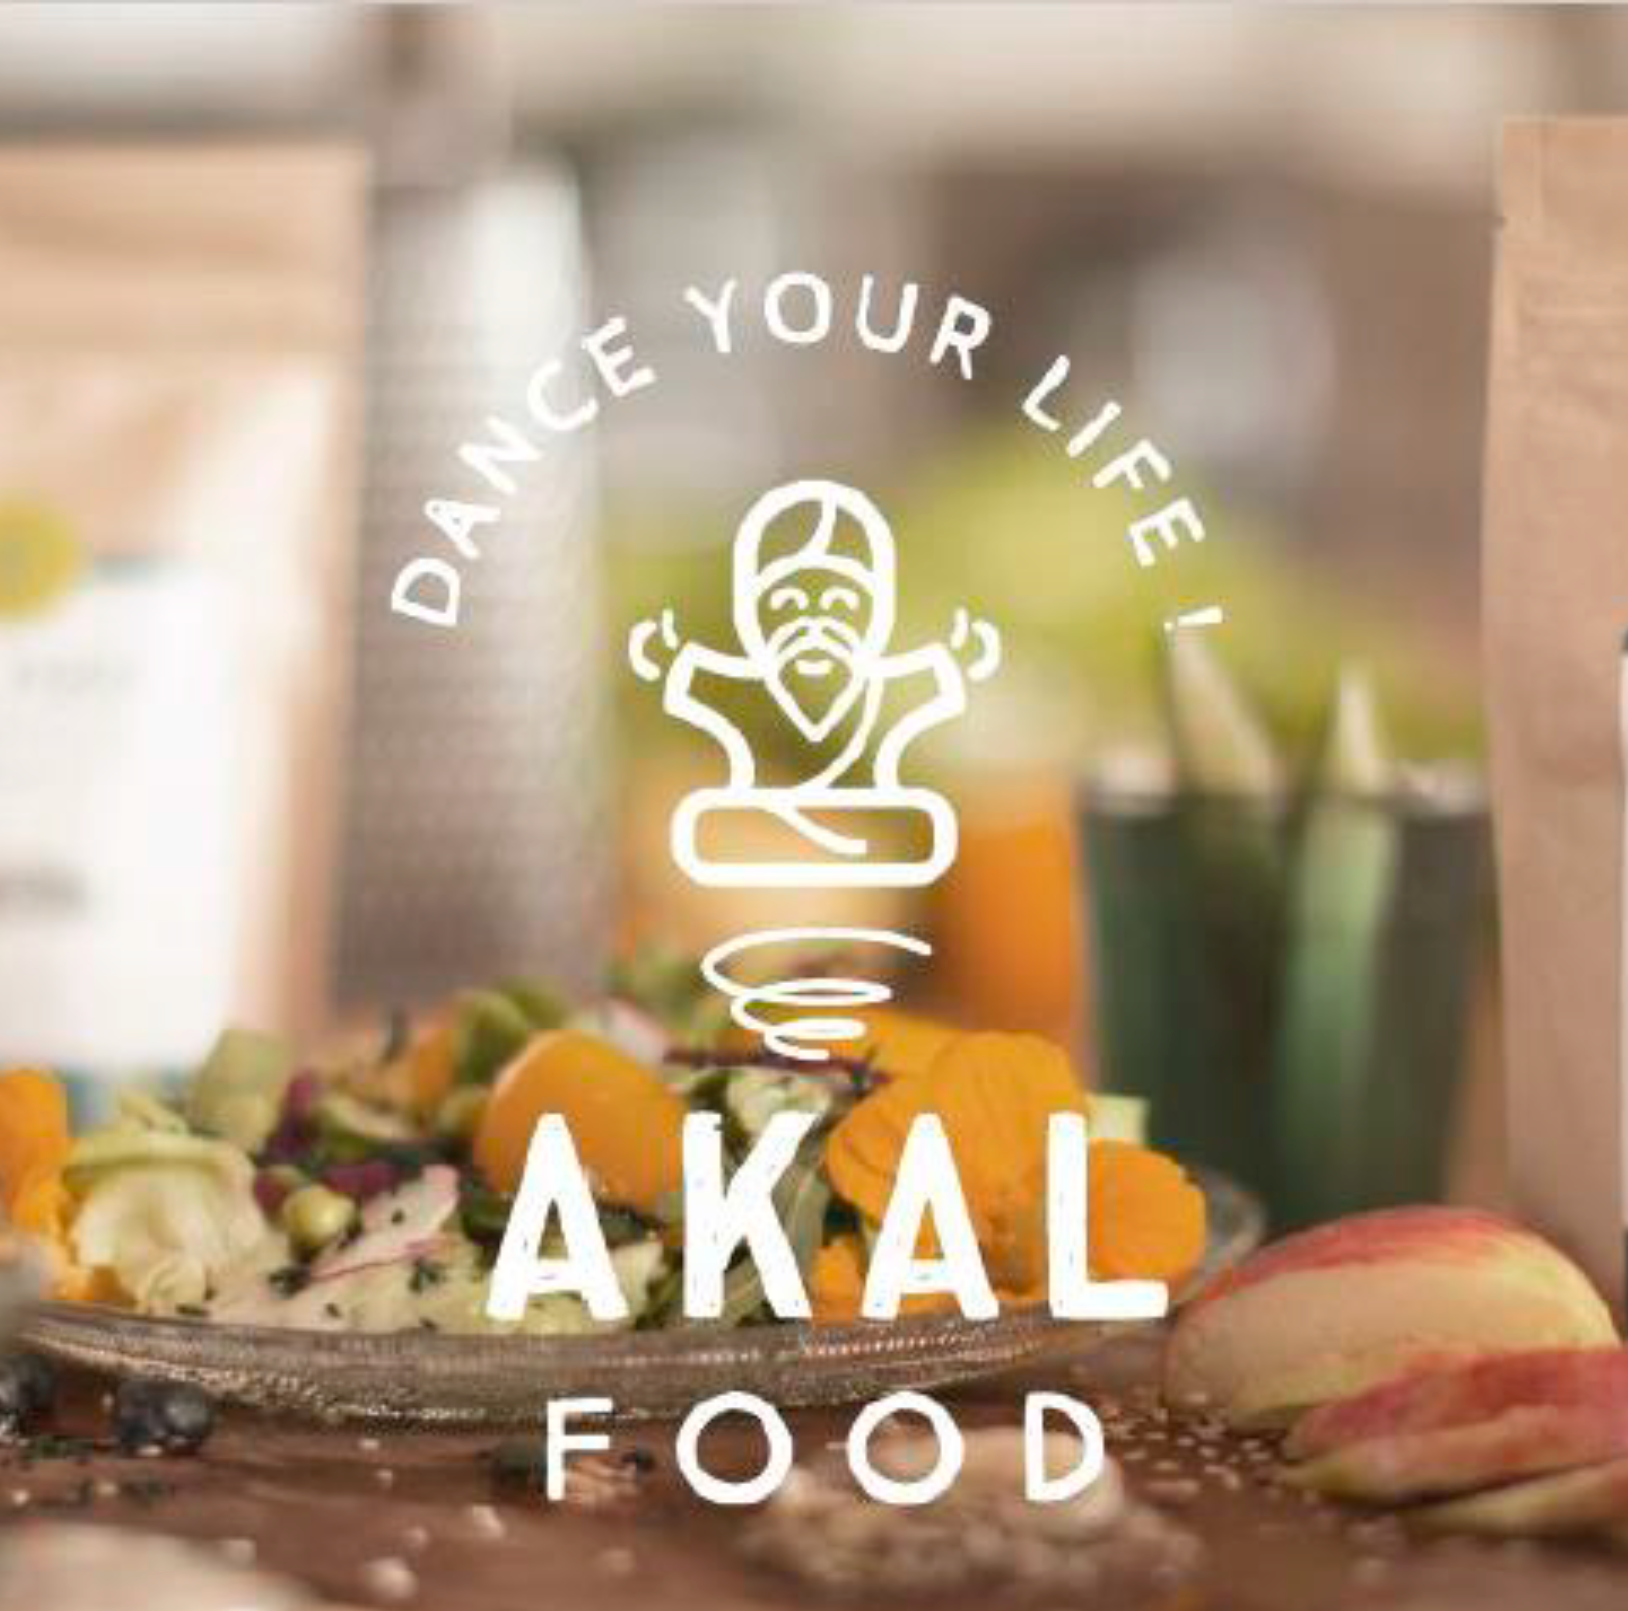 Animation commerciale : Akal food